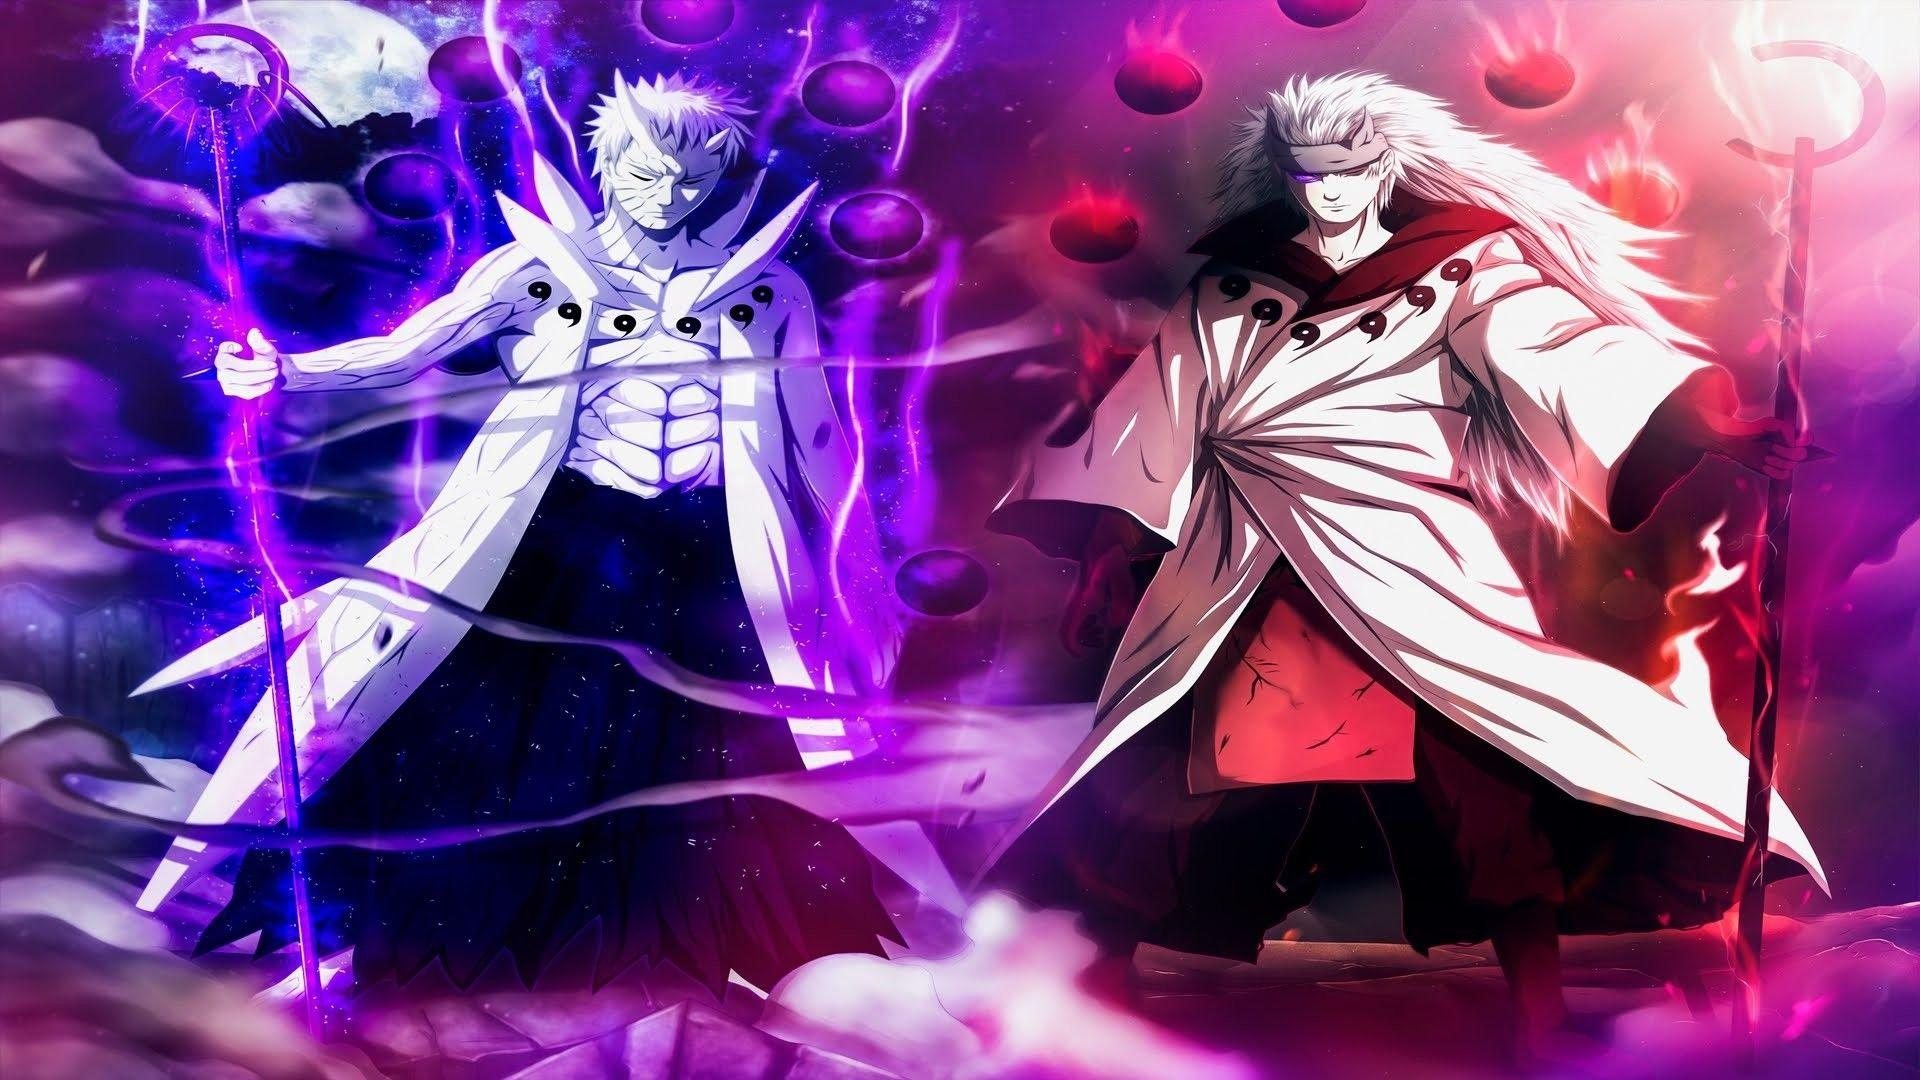 Obito And Madara Hd Wallpapers Wallpaper Cave All of the madara wallpapers bellow have a minimum hd resolution (or 1920x1080 for the tech guys) and are easily downloadable by clicking the image here are some of our latest madara wallpapers. obito and madara hd wallpapers